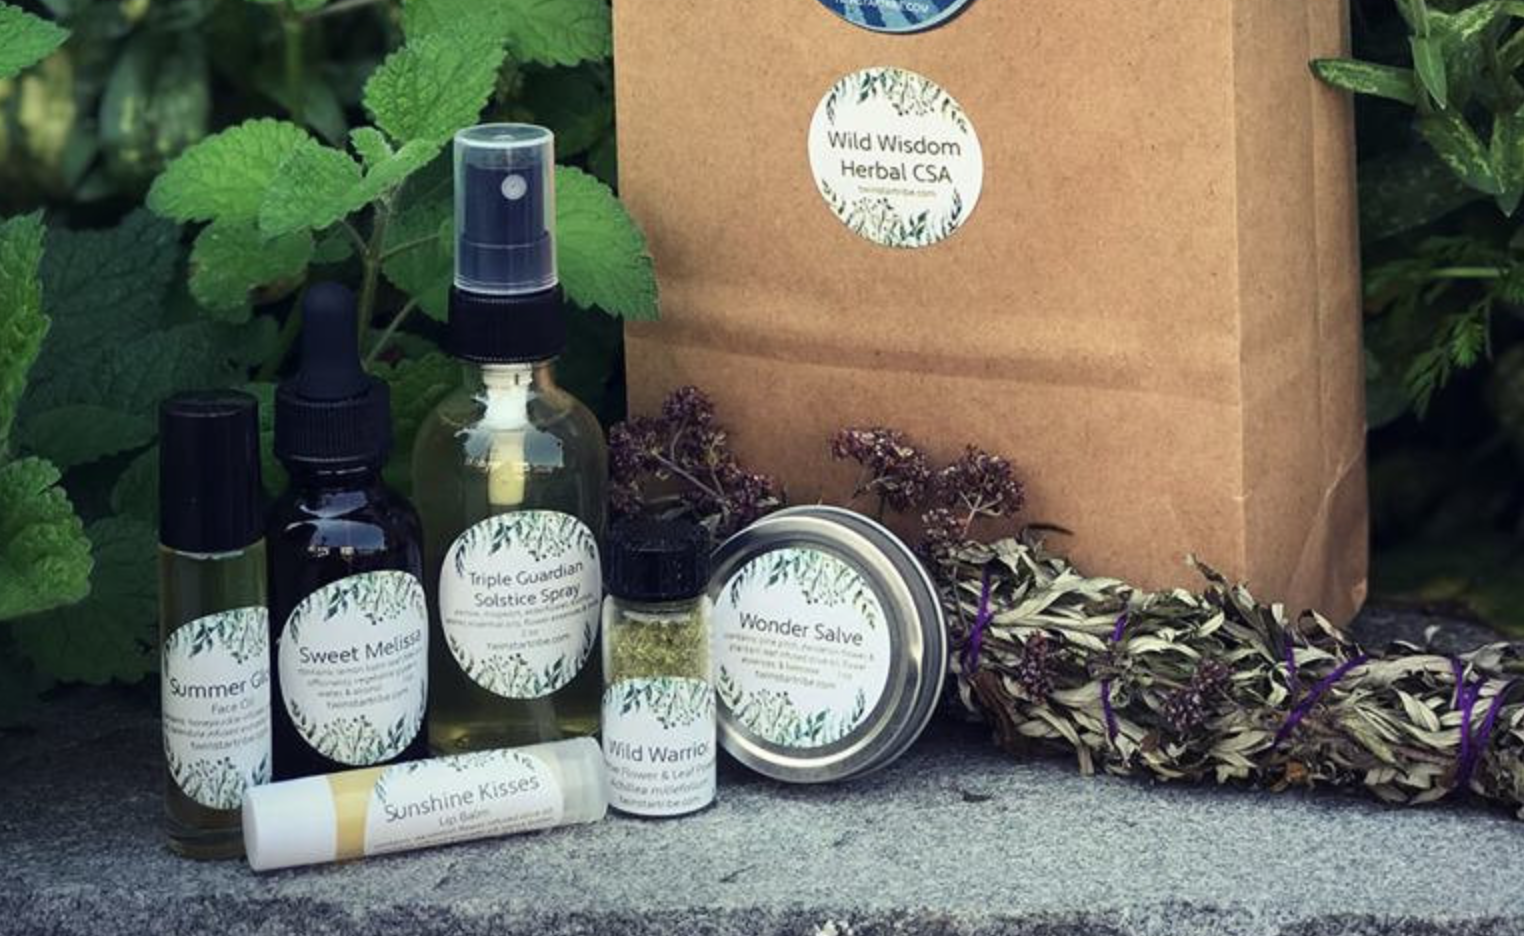 Summer Box: - Sweet Melissa (lemon balm) glycerite, Wild Warrior: yarrow powder, Wonder Salve, Mugwort Smudge Stick, Sunshine Kisses Lip Balm, Triple Guardian Solstice Spray, and Summer Glow Face Oil! All of this comes with a beautifully written newsletter explain the traditional uses of these herbs and a little bit about the products!